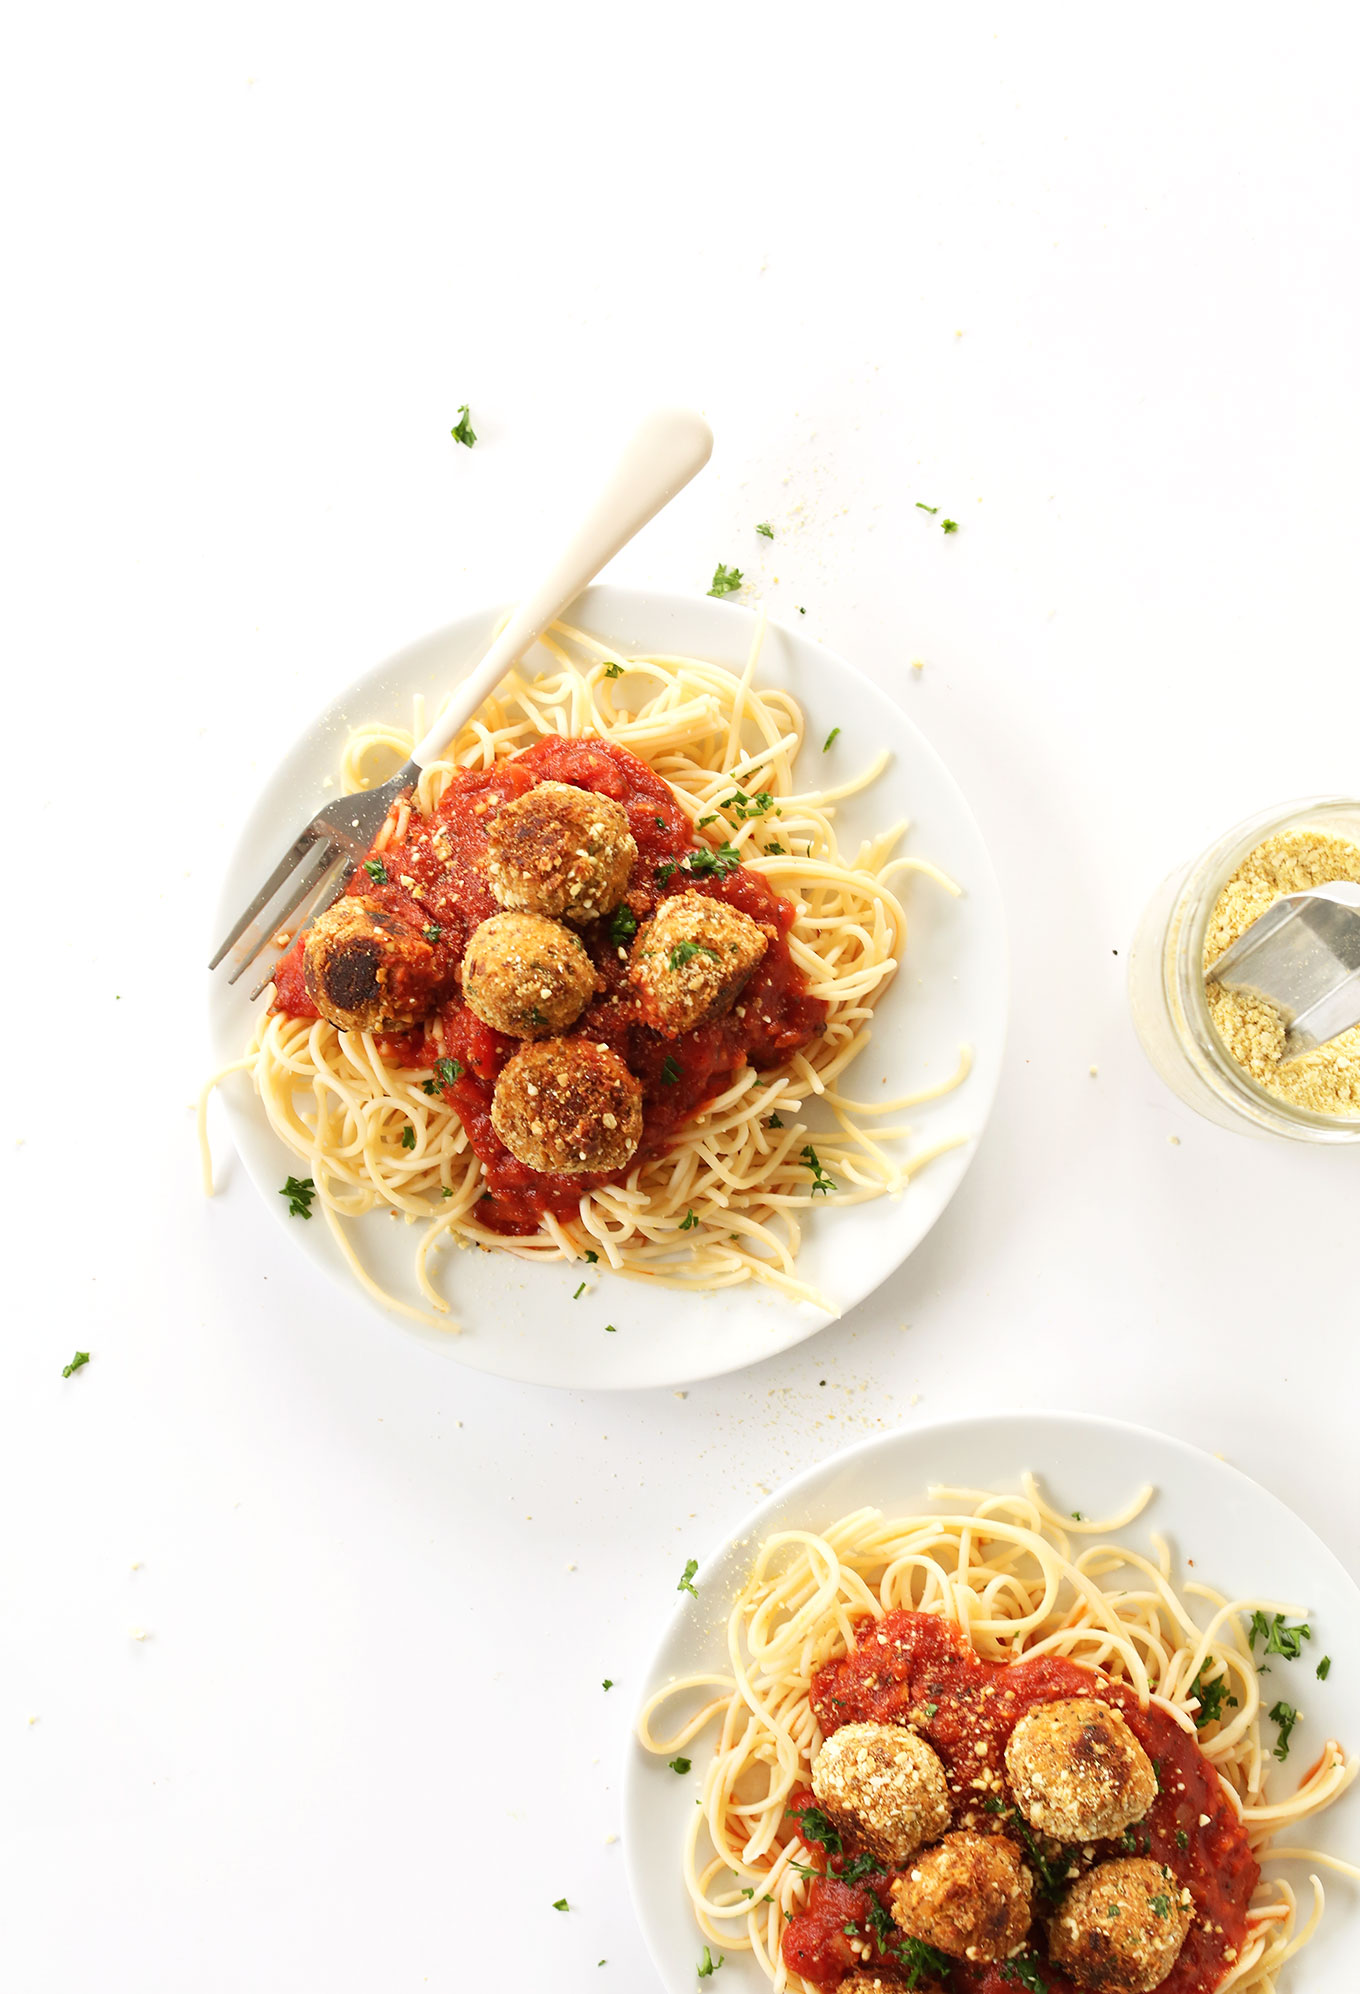 EASY vegan meatballs just 10 ingredients and PACKED with protein!! #vegan #minimalistbaker